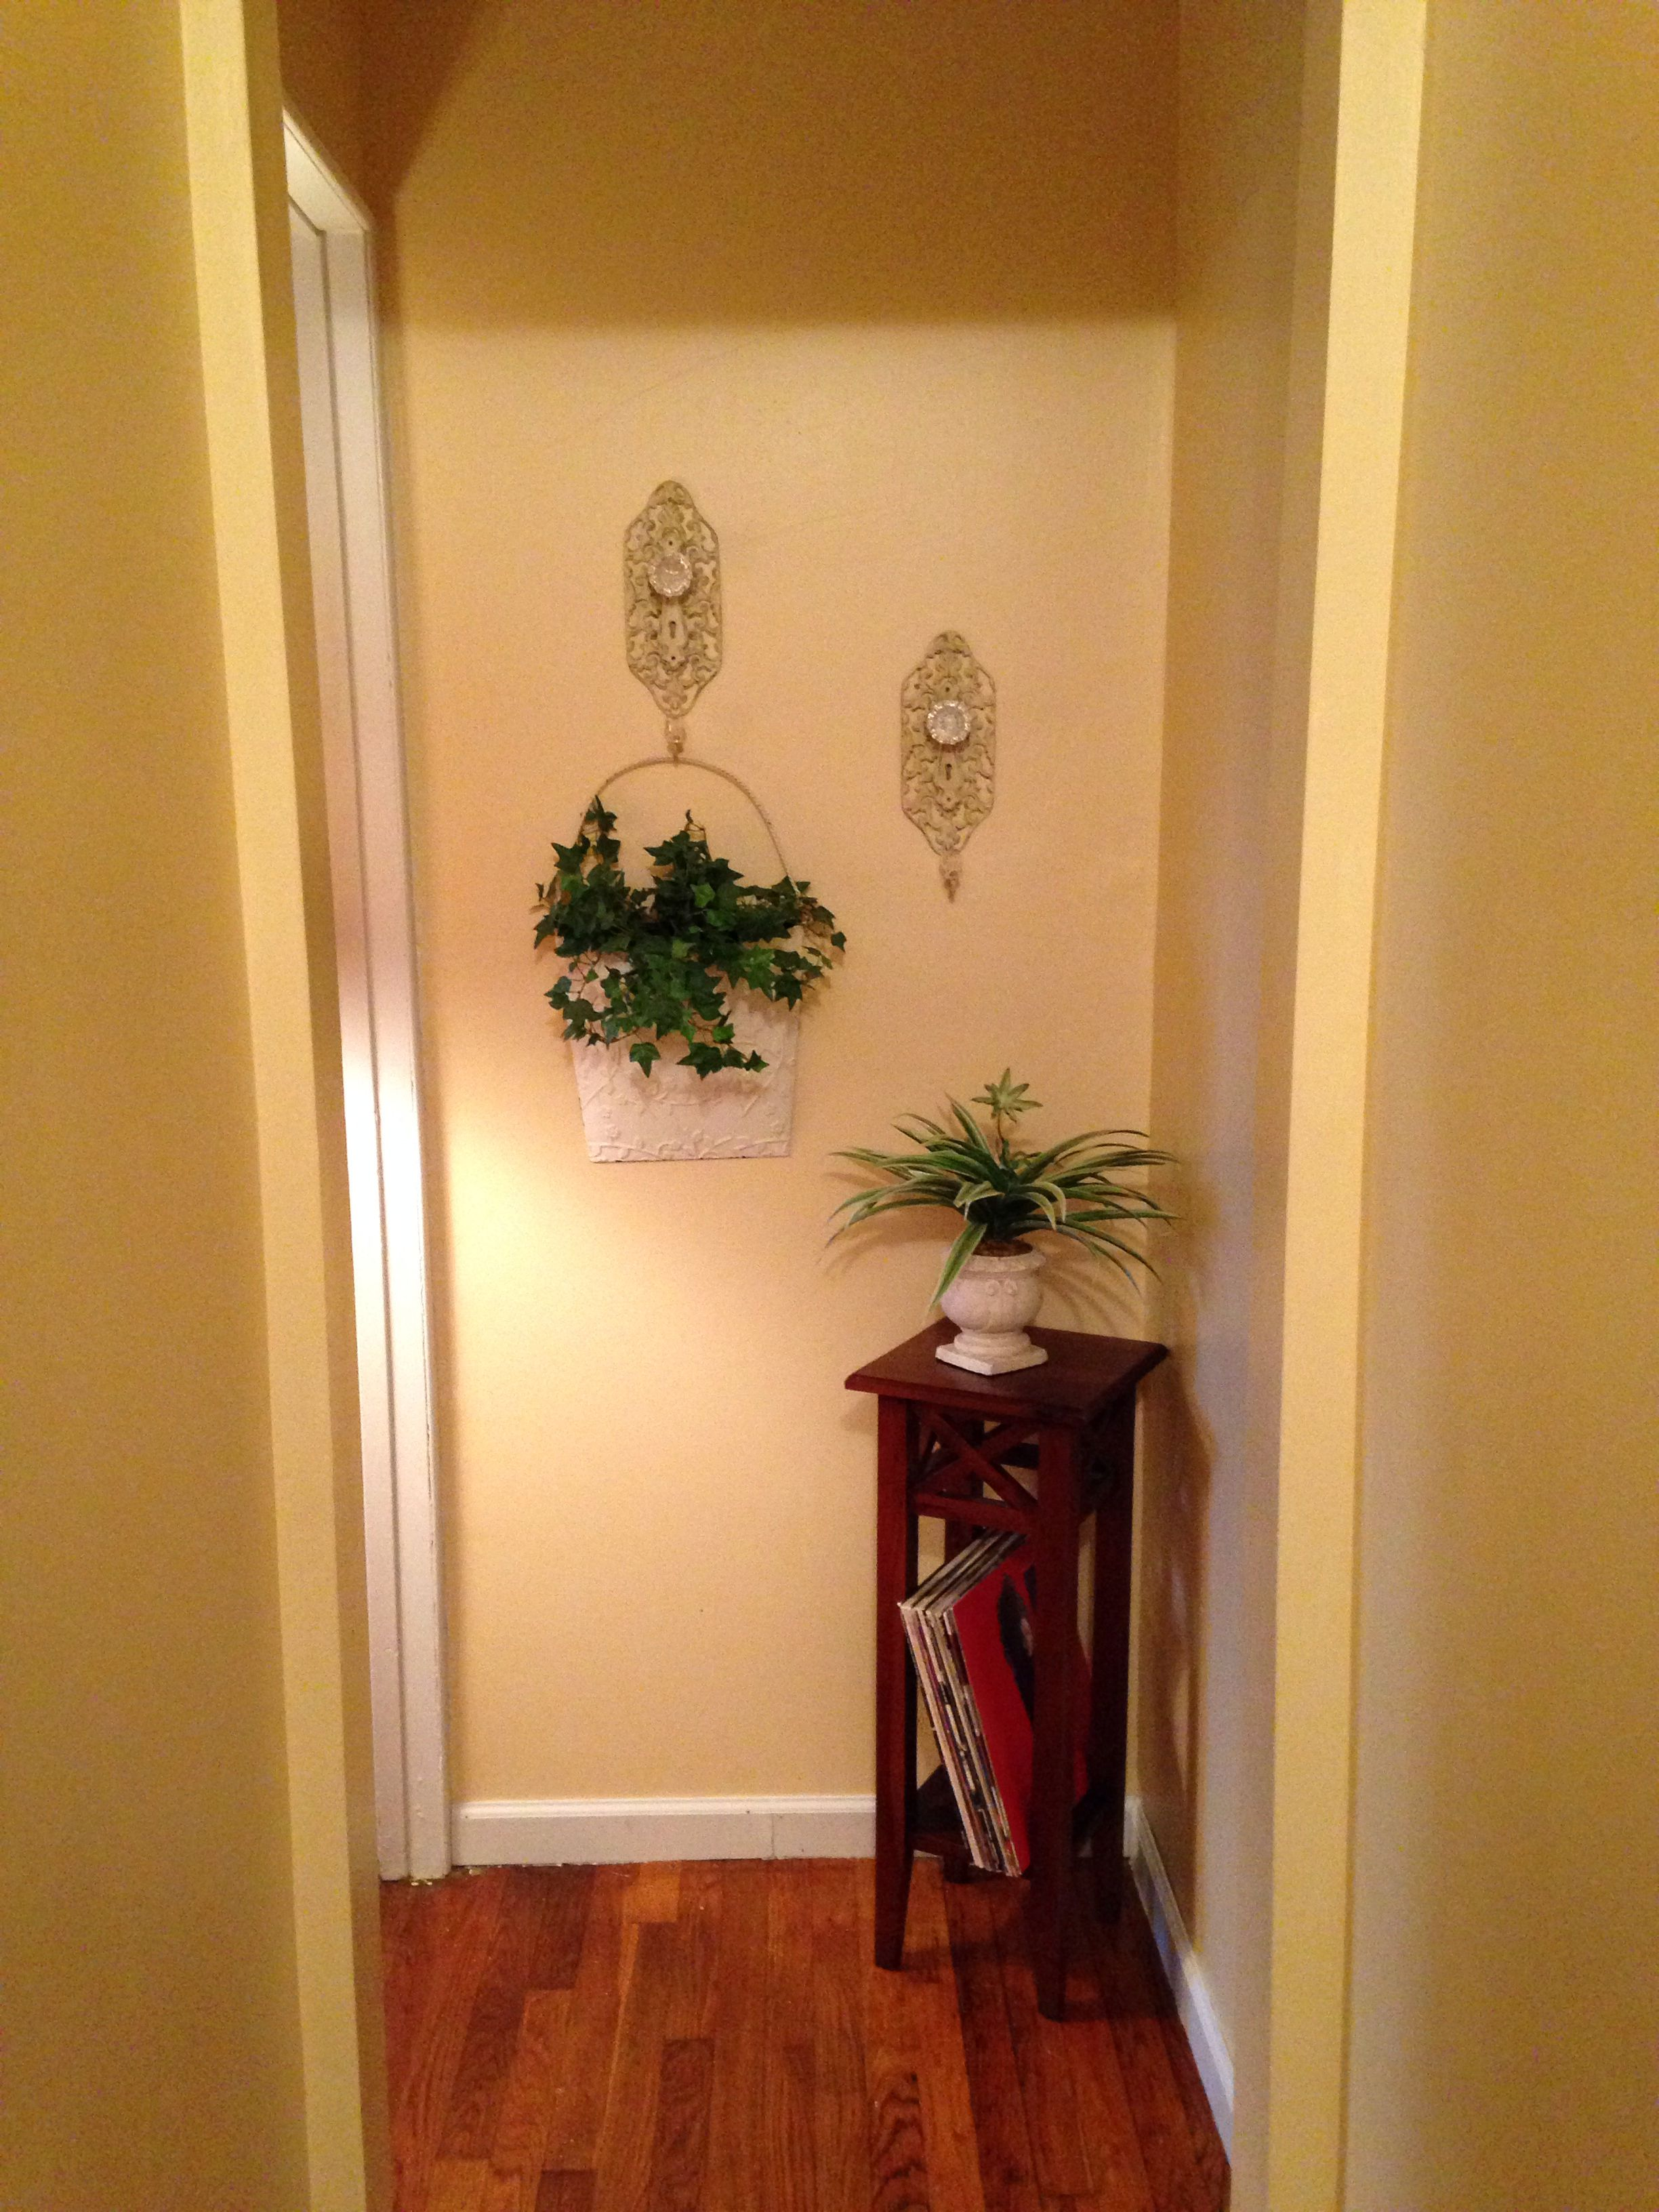 End of hallway decor  End of hallway decor via Meghann Tinker  Ideas for the house